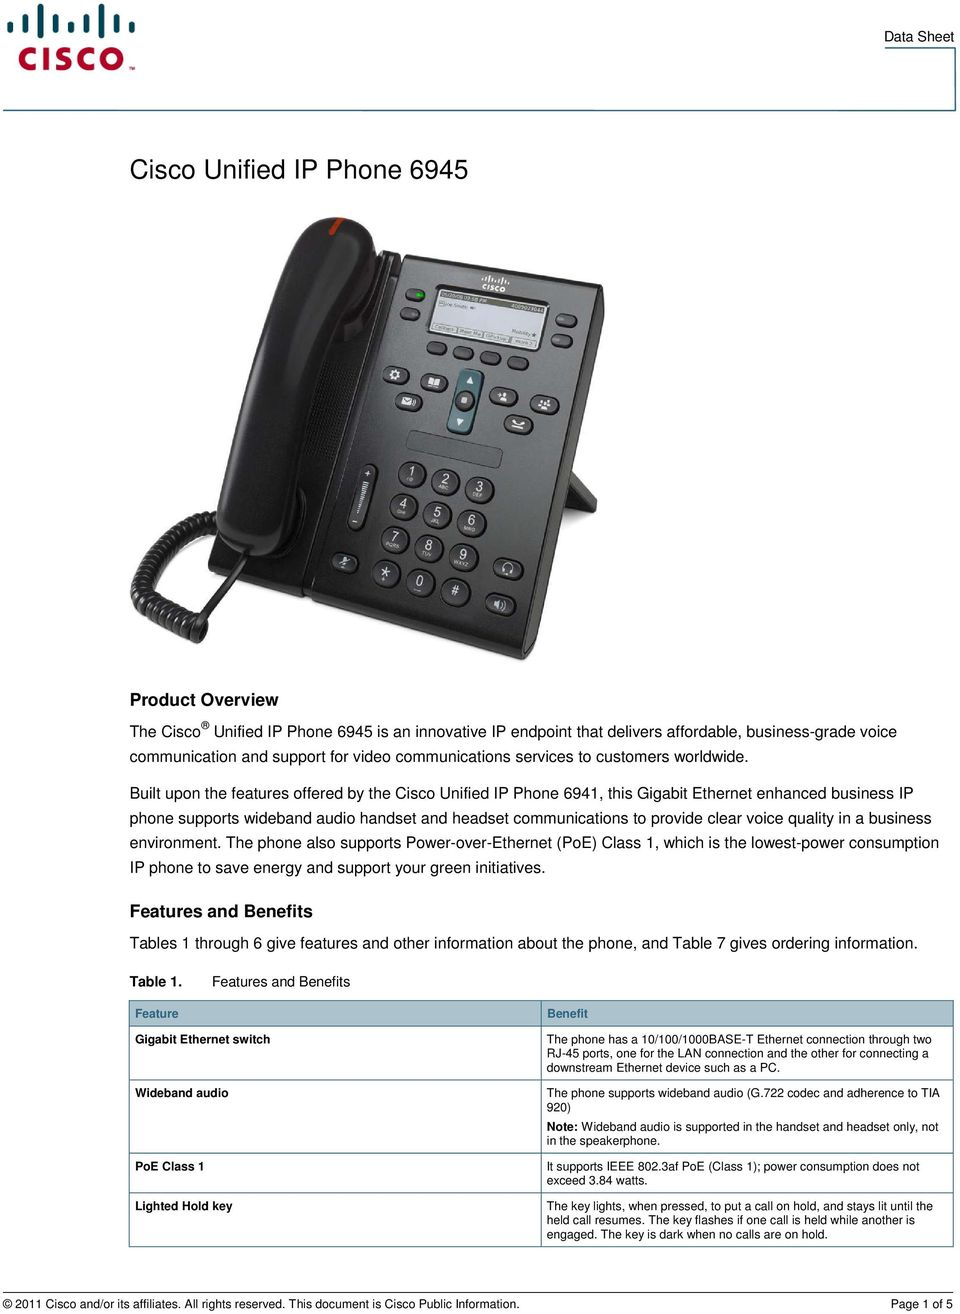 Built upon the features offered by the Cisco Unified IP Phone 6941, this Gigabit Ethernet enhanced business IP phone supports wideband audio handset and headset communications to provide clear voice